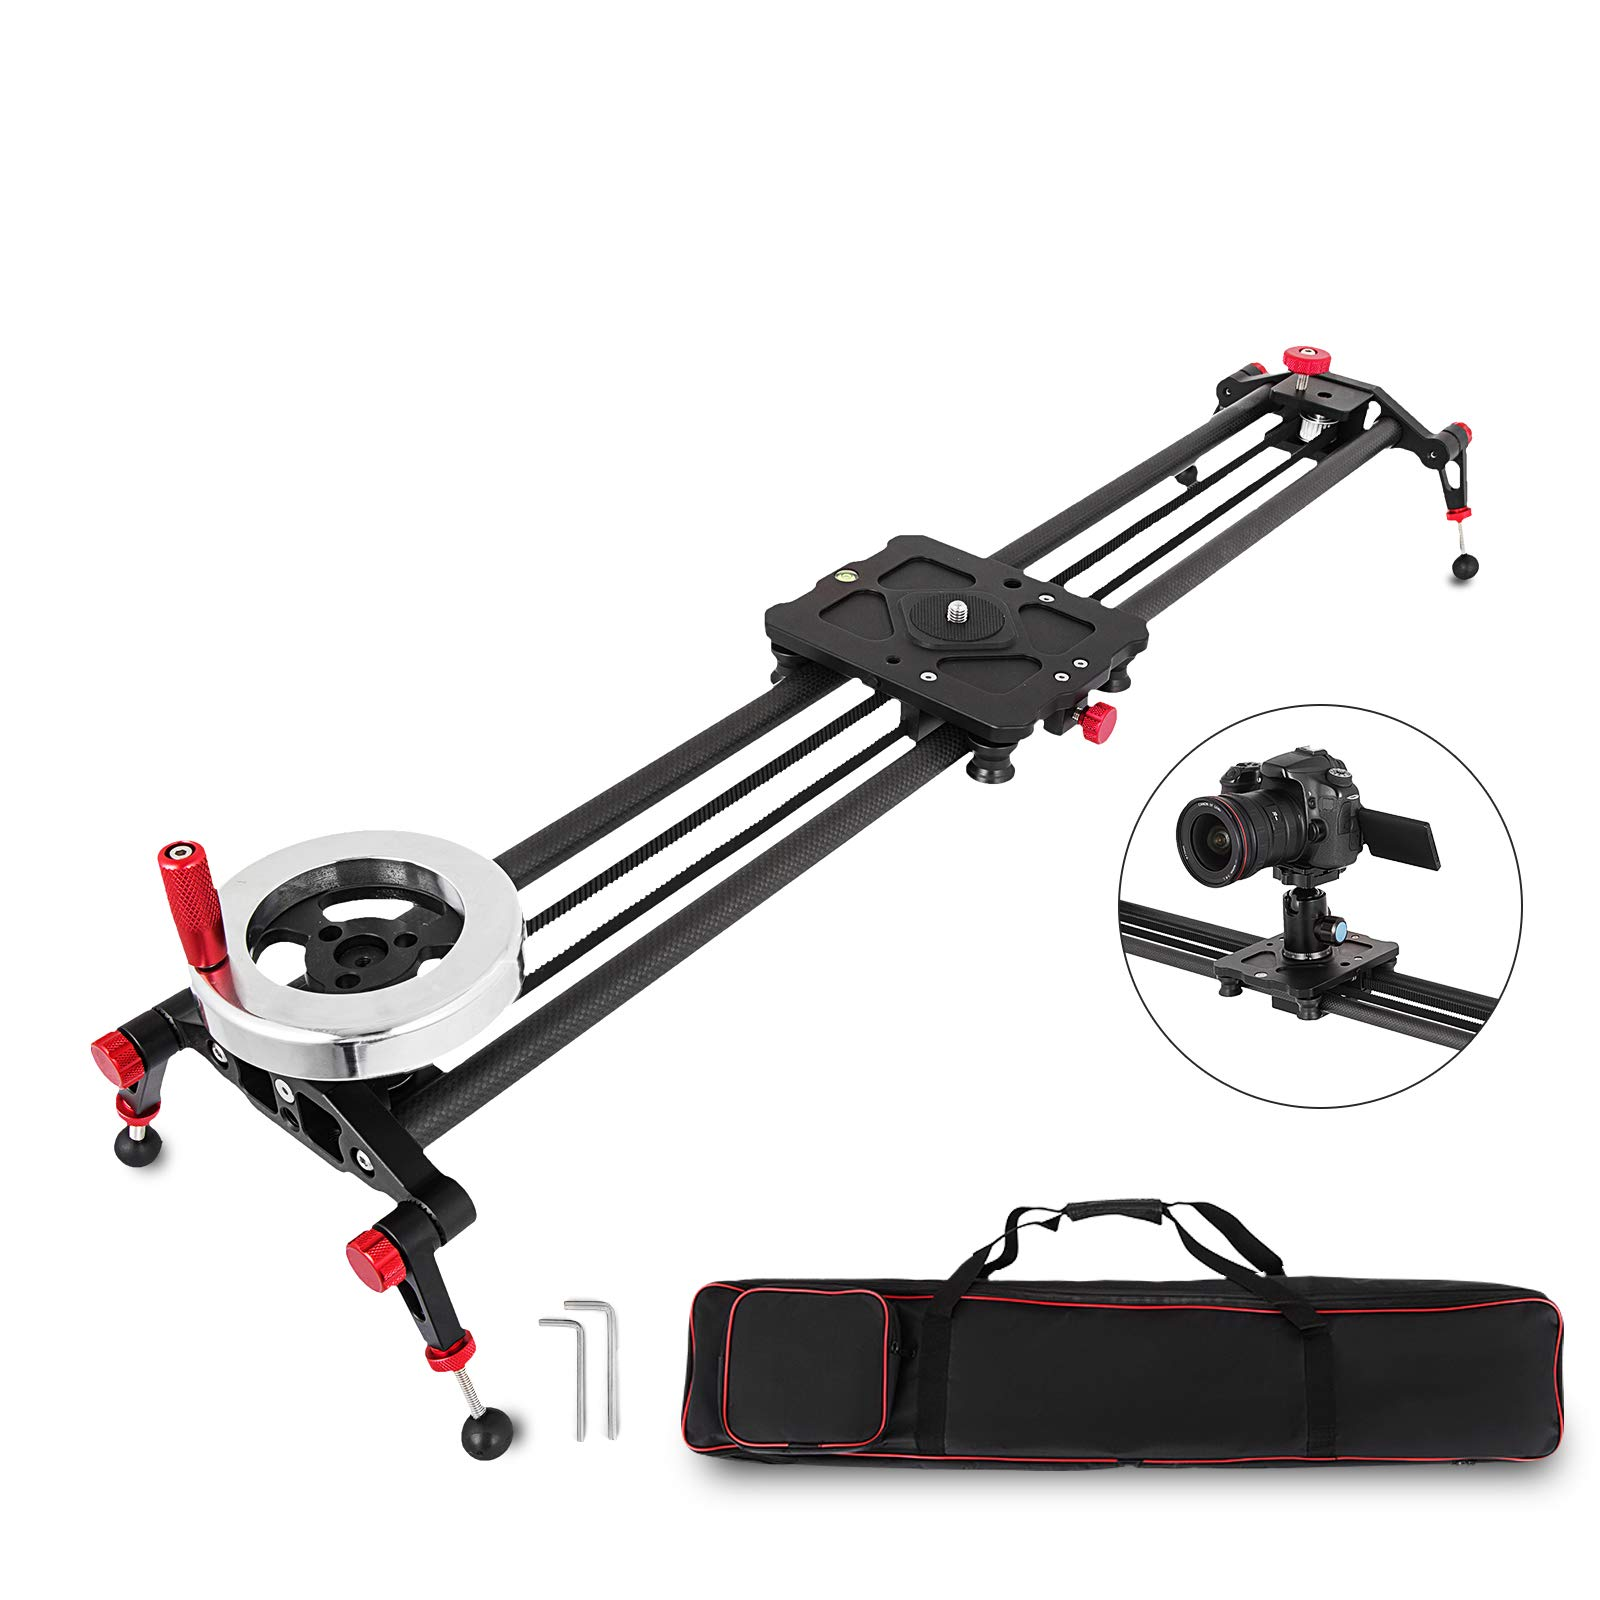 Happybuy 31.5'' Camera Track Slider Rail with Handle Flywheel Counterweight Carbon Fiber Rails 110LB Capacity Video Stabilizer Dolly for DSLR Filming Camcorder DV Film Stabilization Track by Happybuy